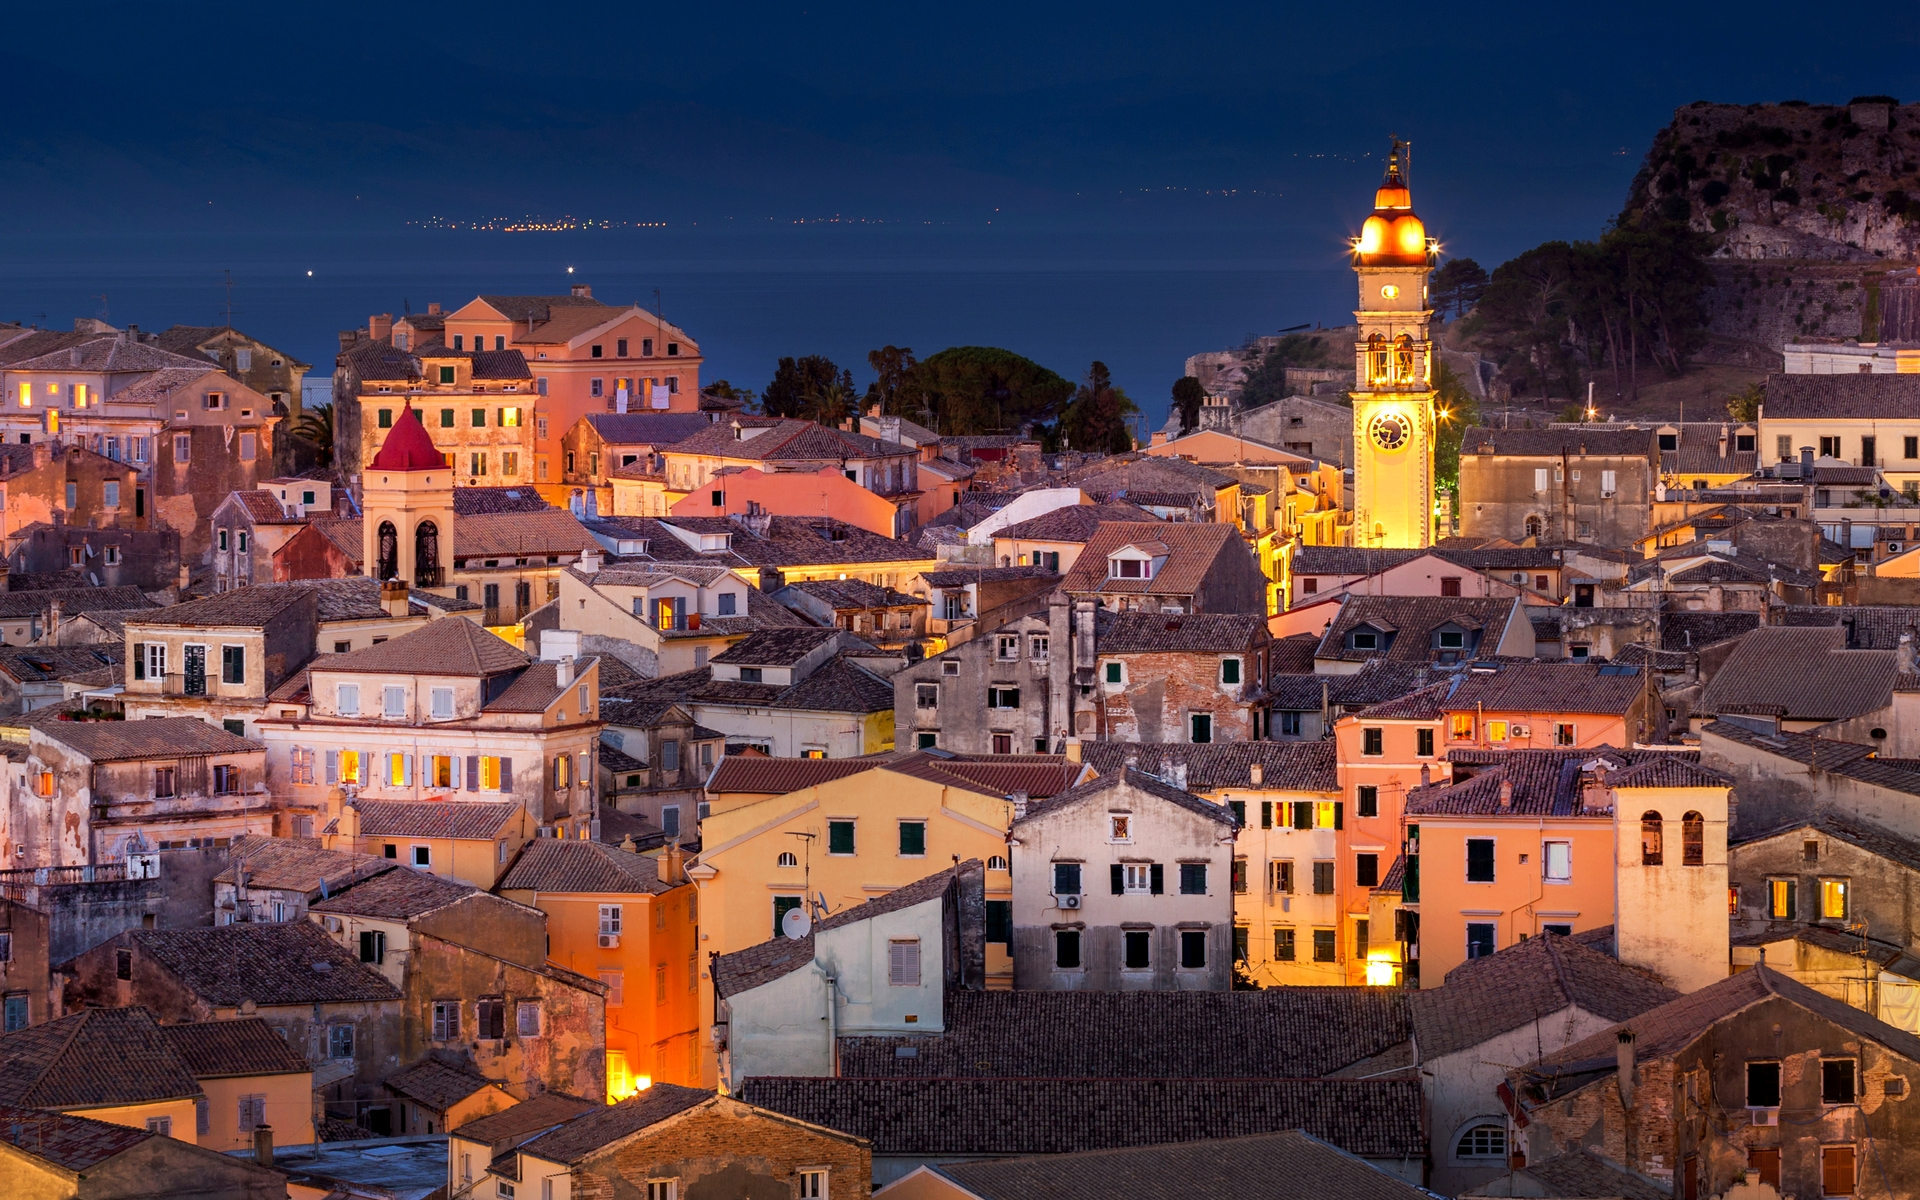 The town of Corfu ([image source](https://www.mylittleadventure.com/best-things/corfu/tours/corfu-by-night-private-tour-d2ZLkW5f))